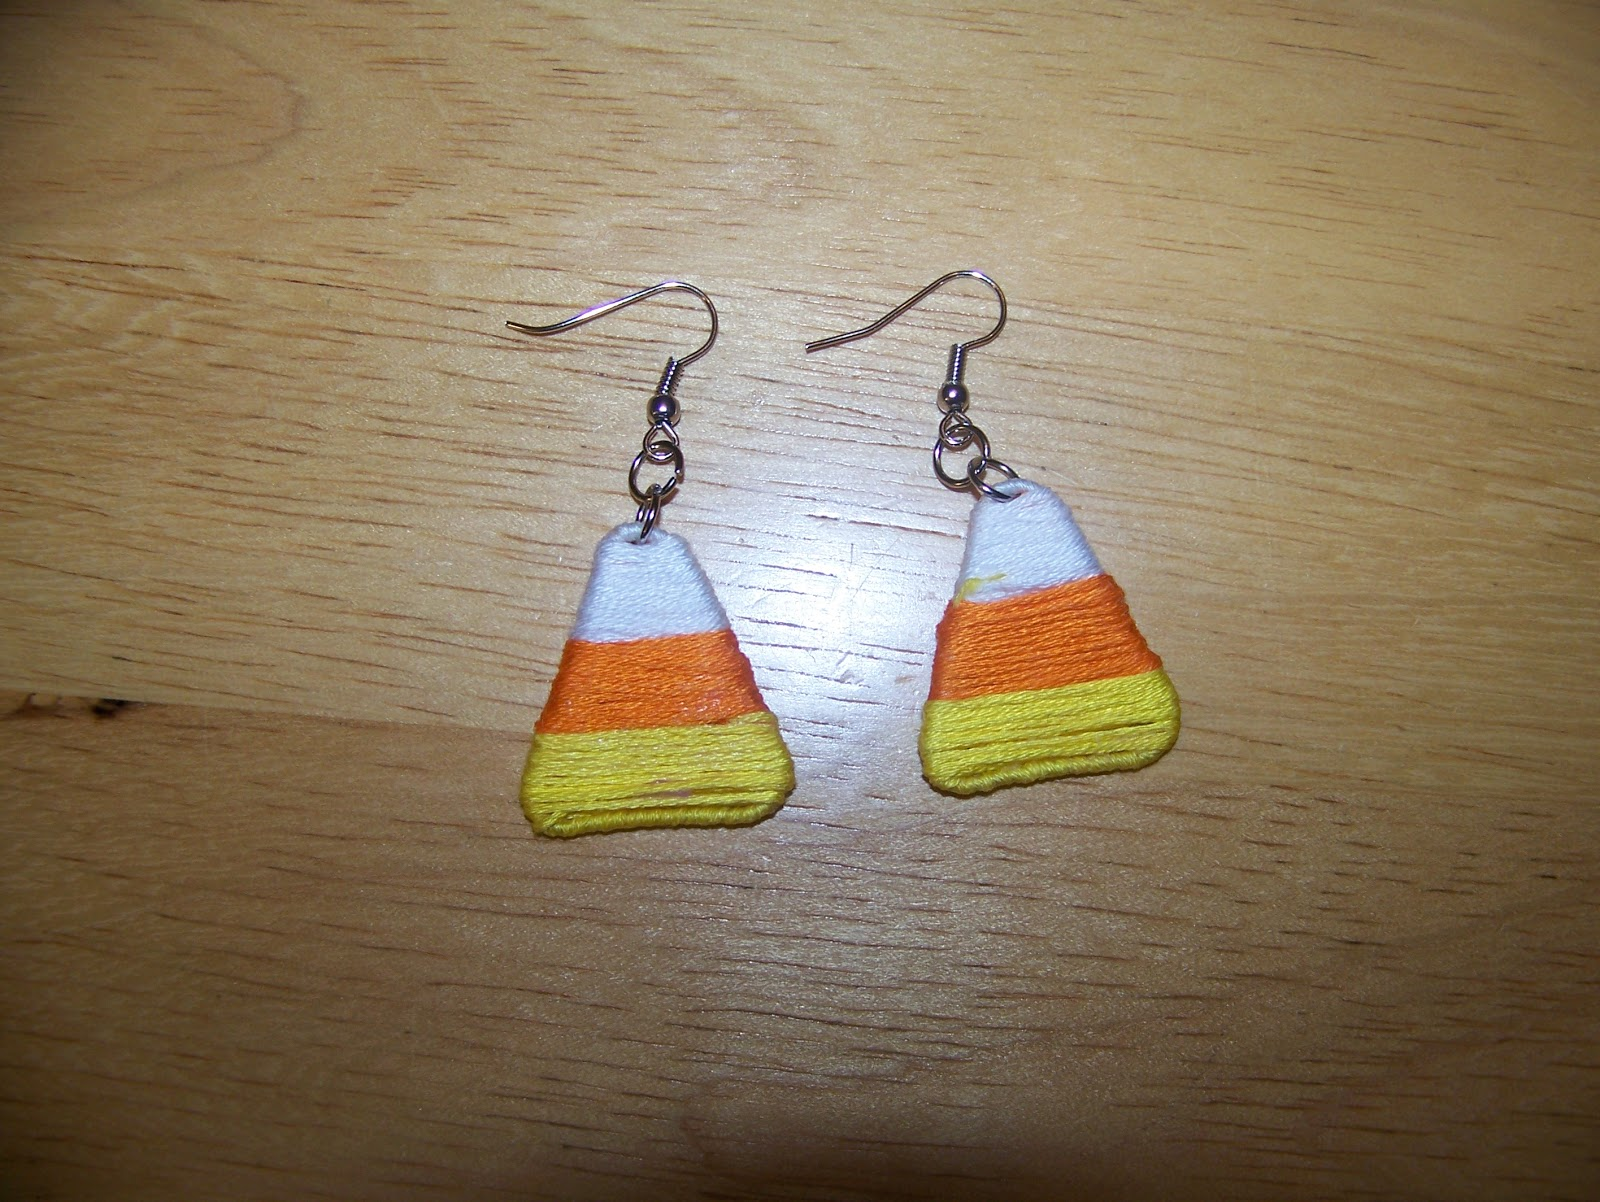 Making Cooley Stuff Candy Corn Paper Clip Earrings